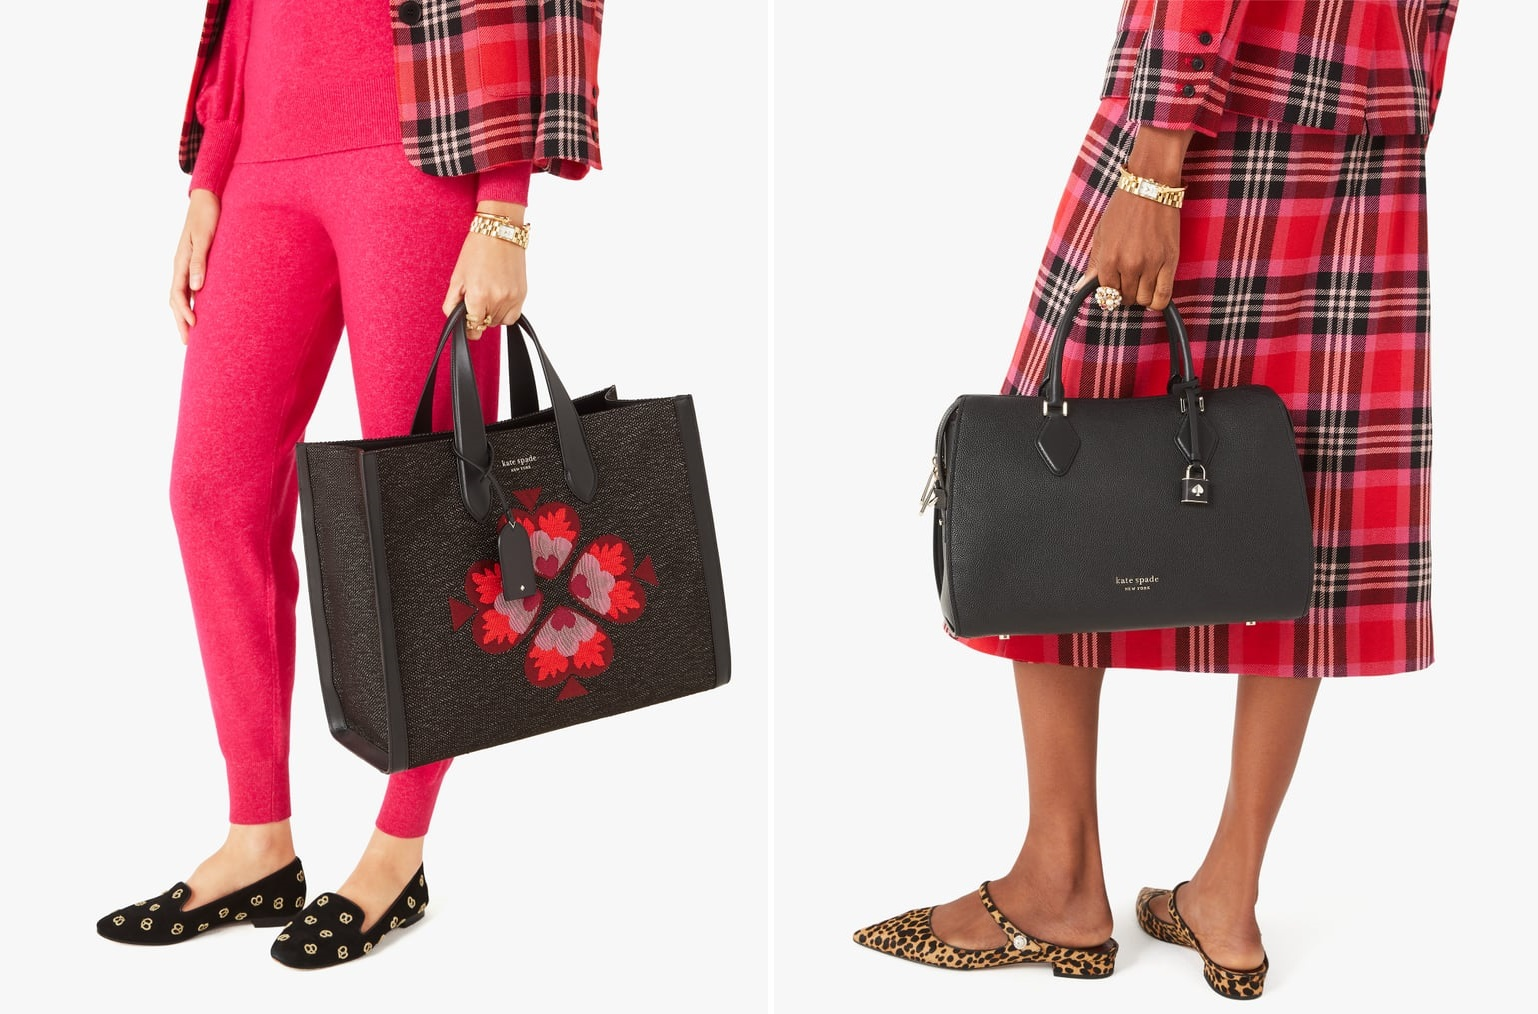 Kate Spade NY New Fall Collection